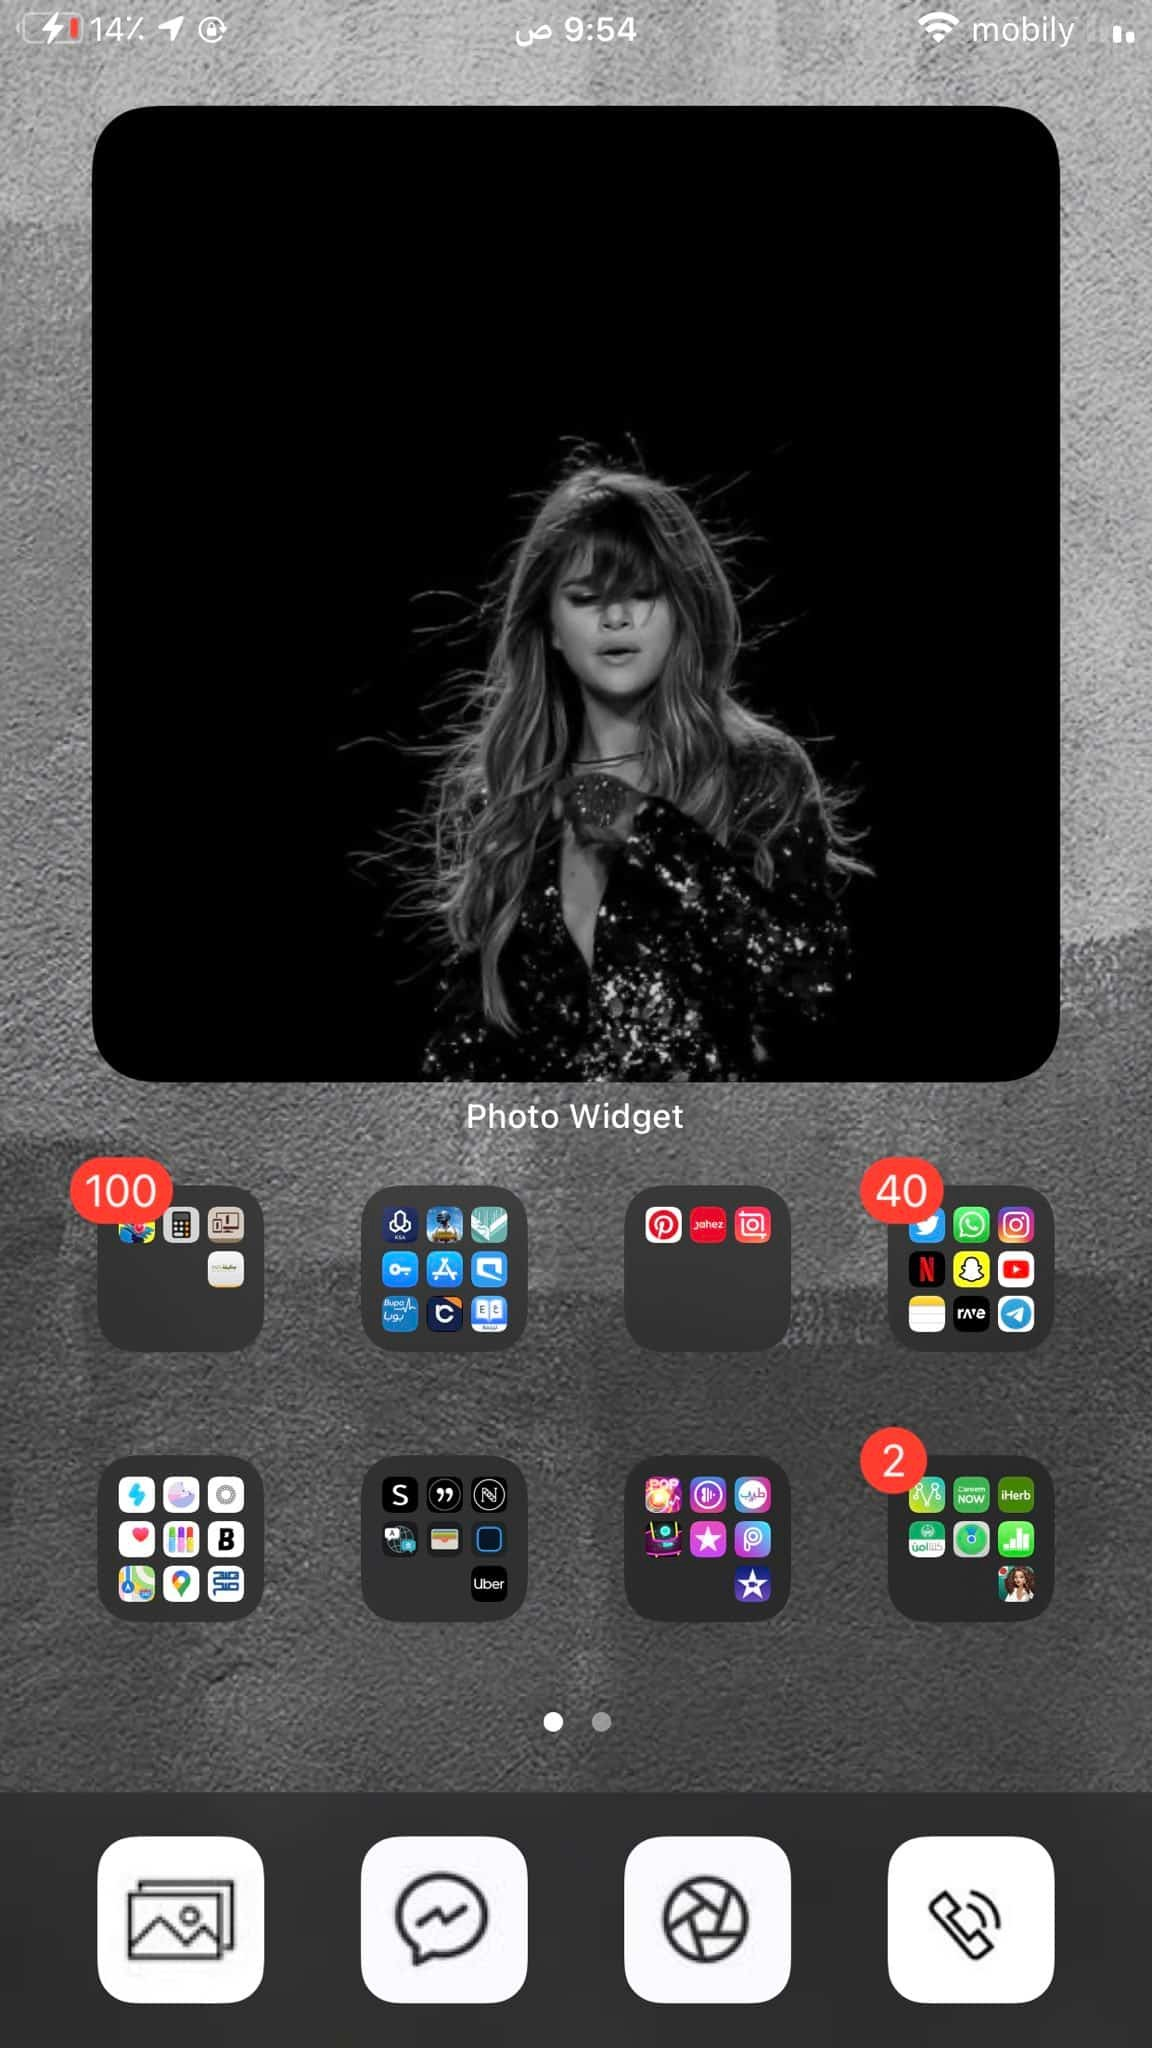 Ios 14 Aesthetic Home Screen Ideas For Iphone All Things How